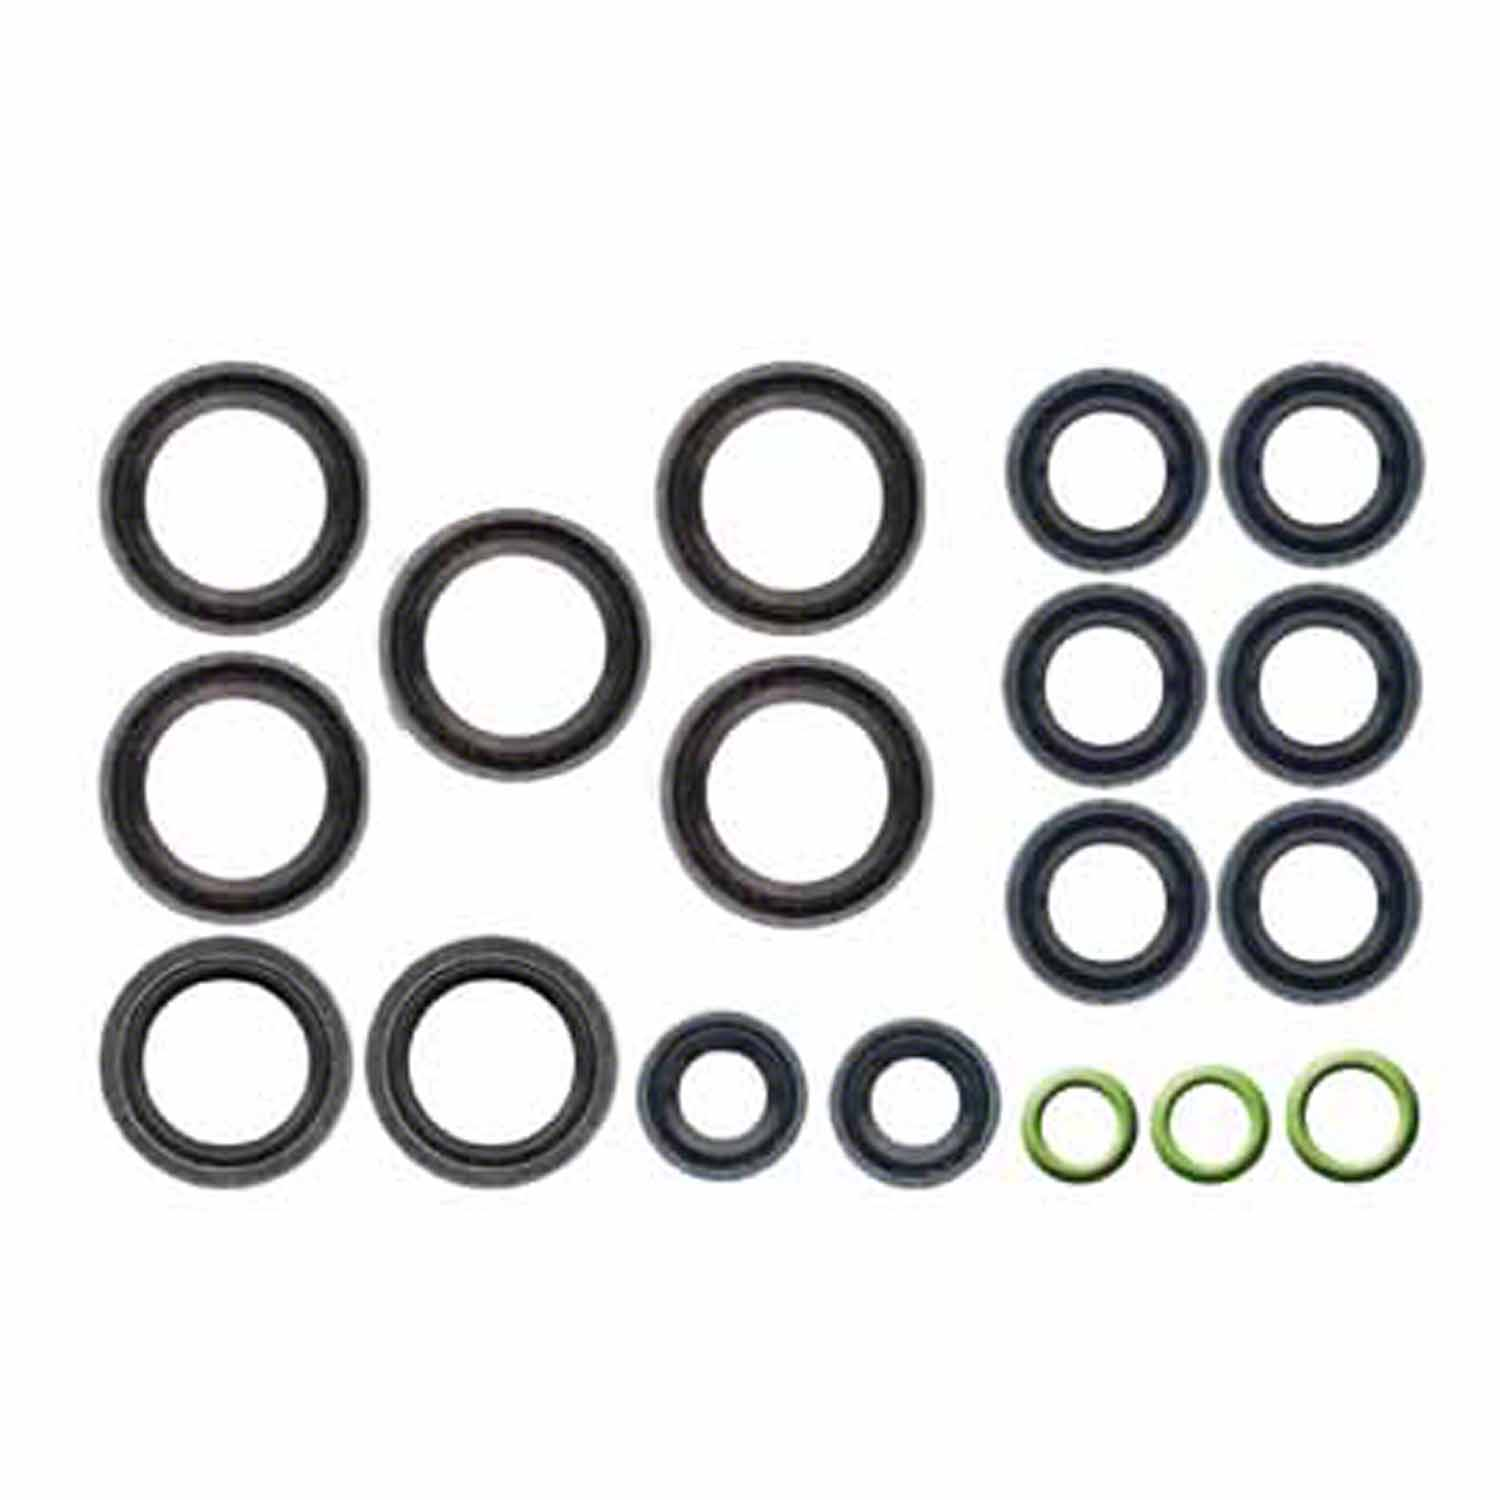 Ftt A C System Seal Kit For Saturn Astra Aura Ion